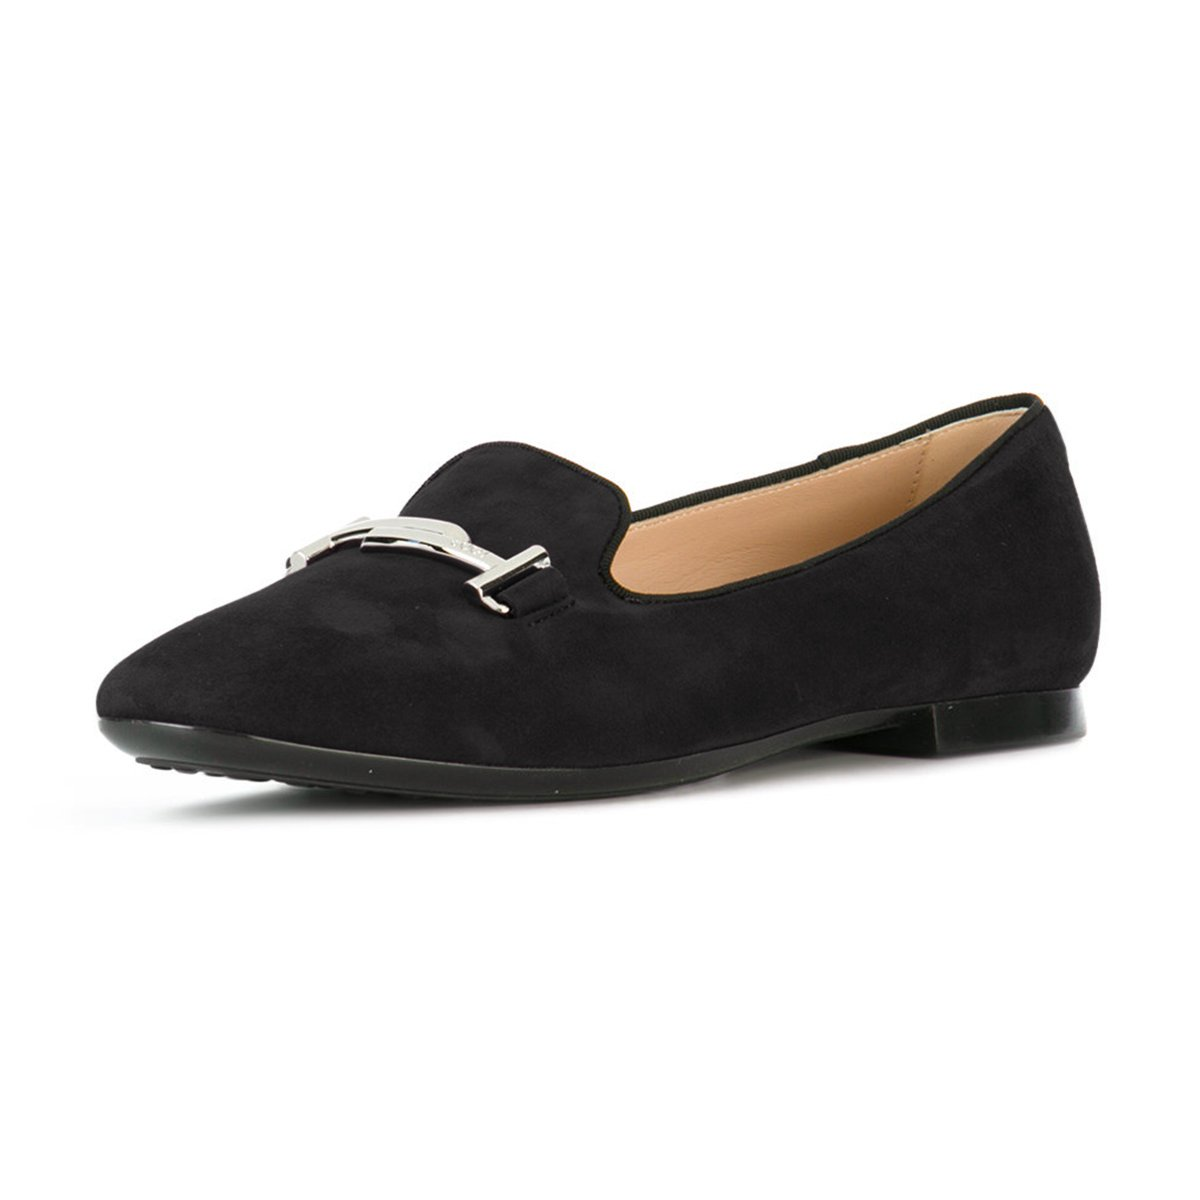 XYD Comfortable Low Heel Slip On Suede Flats Pointed Toe Ballet Loafer Dress Shoes for Women B0794T7R4J 7 B(M) US|Black